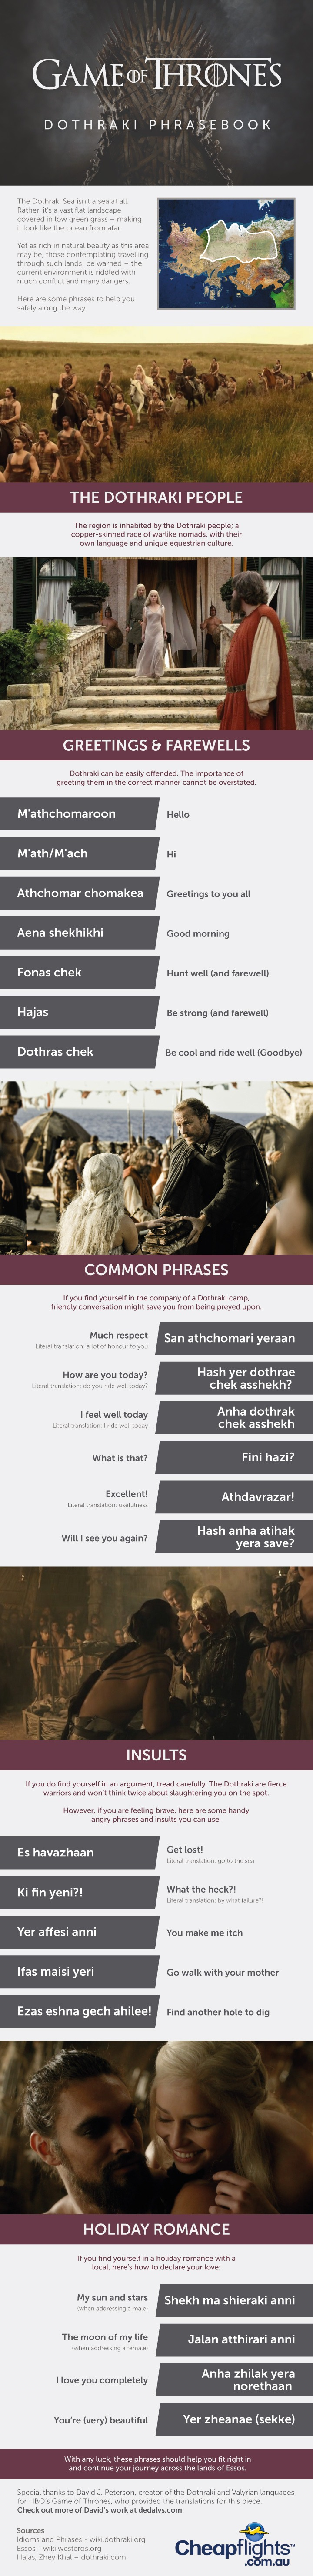 game-of-thrones-phrasebook